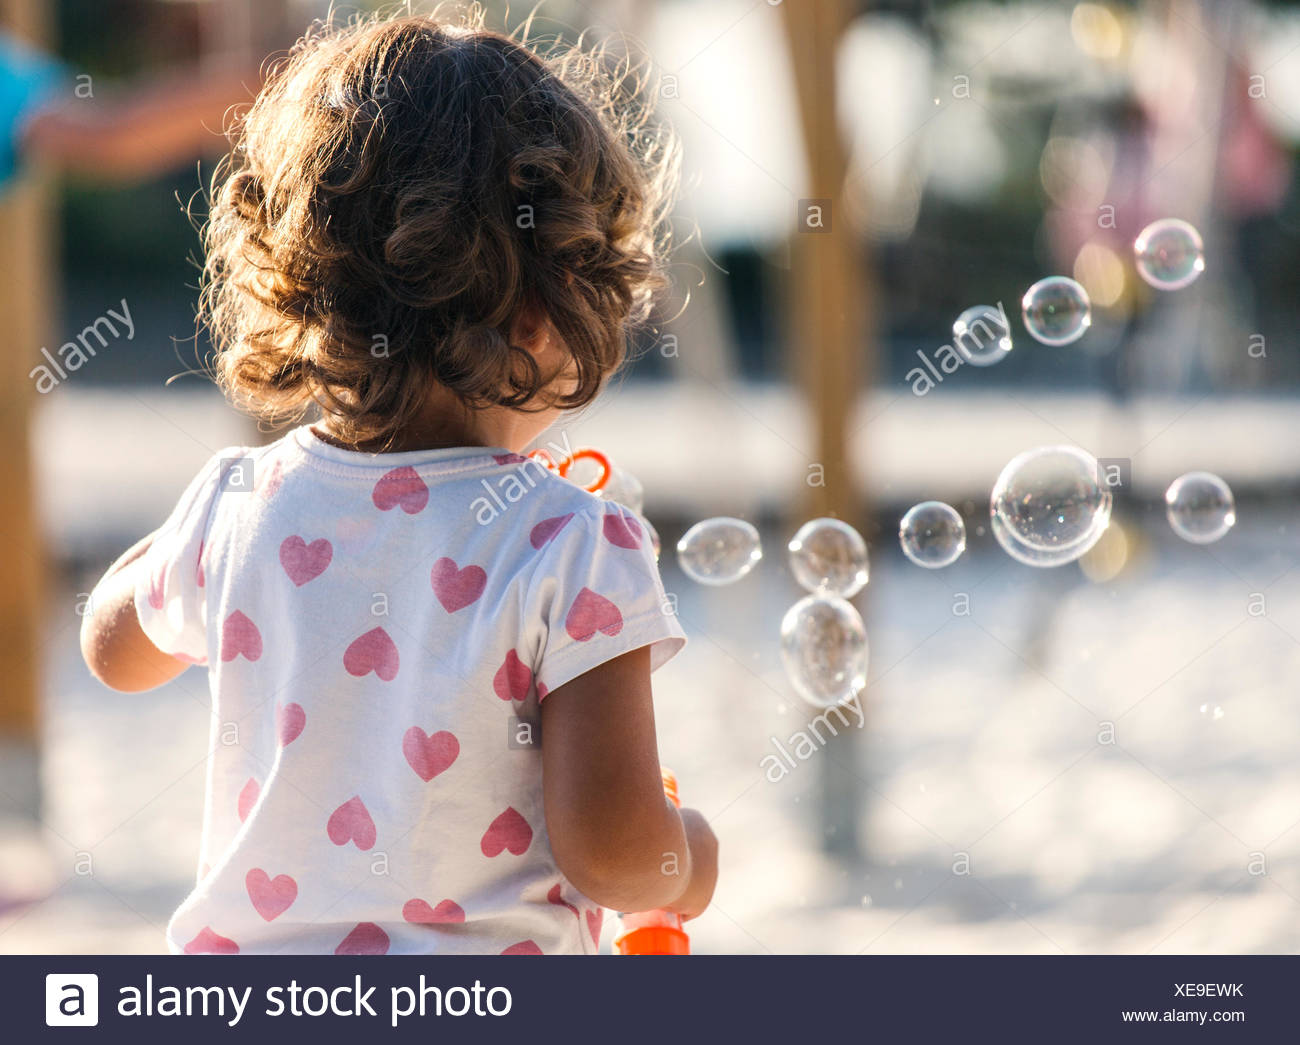 Back view of little girl making soap bubbles at playground - Stock Image